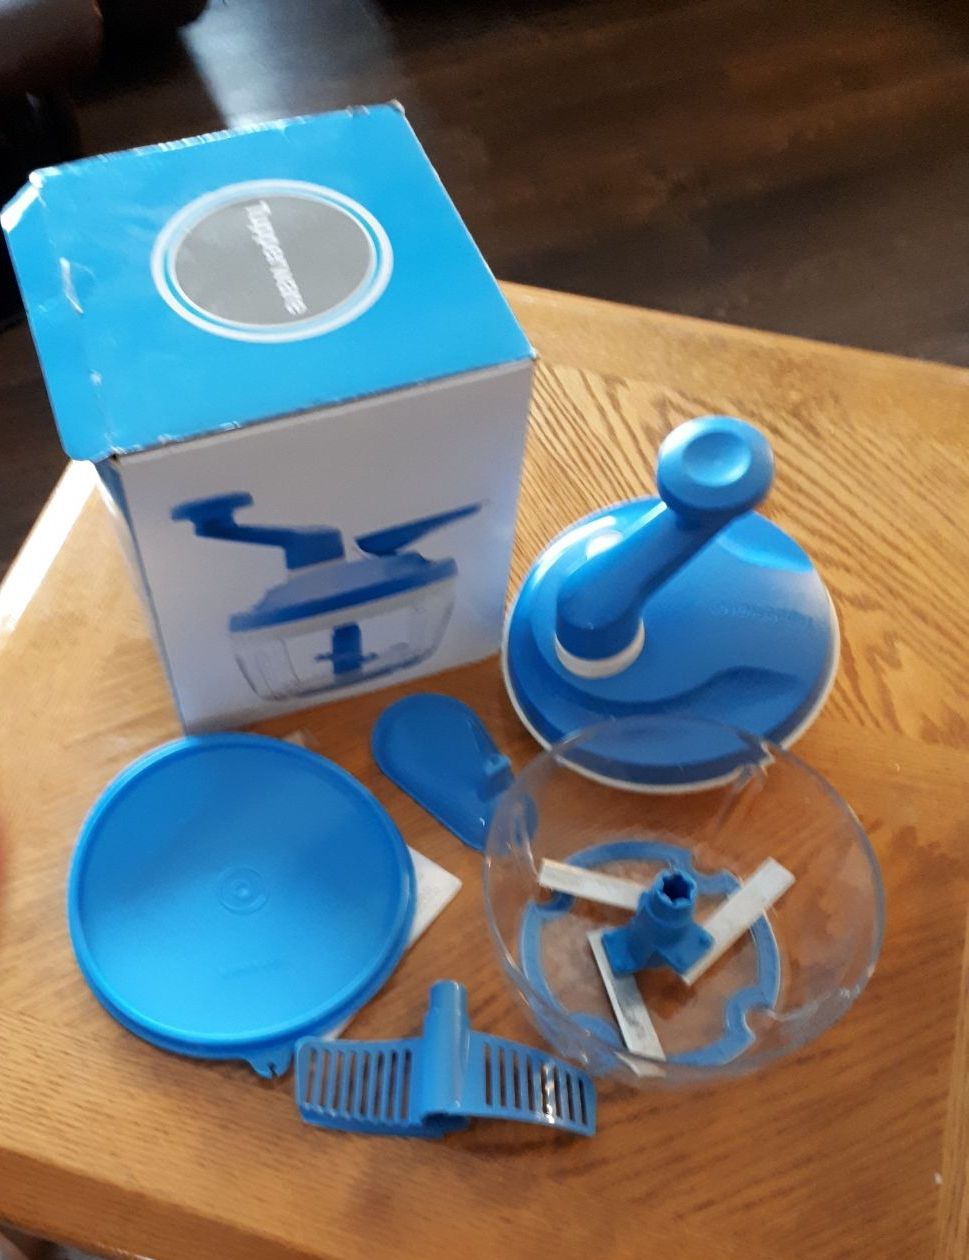 Onwijs Best Tupperware Quick Chef Pro System for sale in Camrose, Alberta DT-59